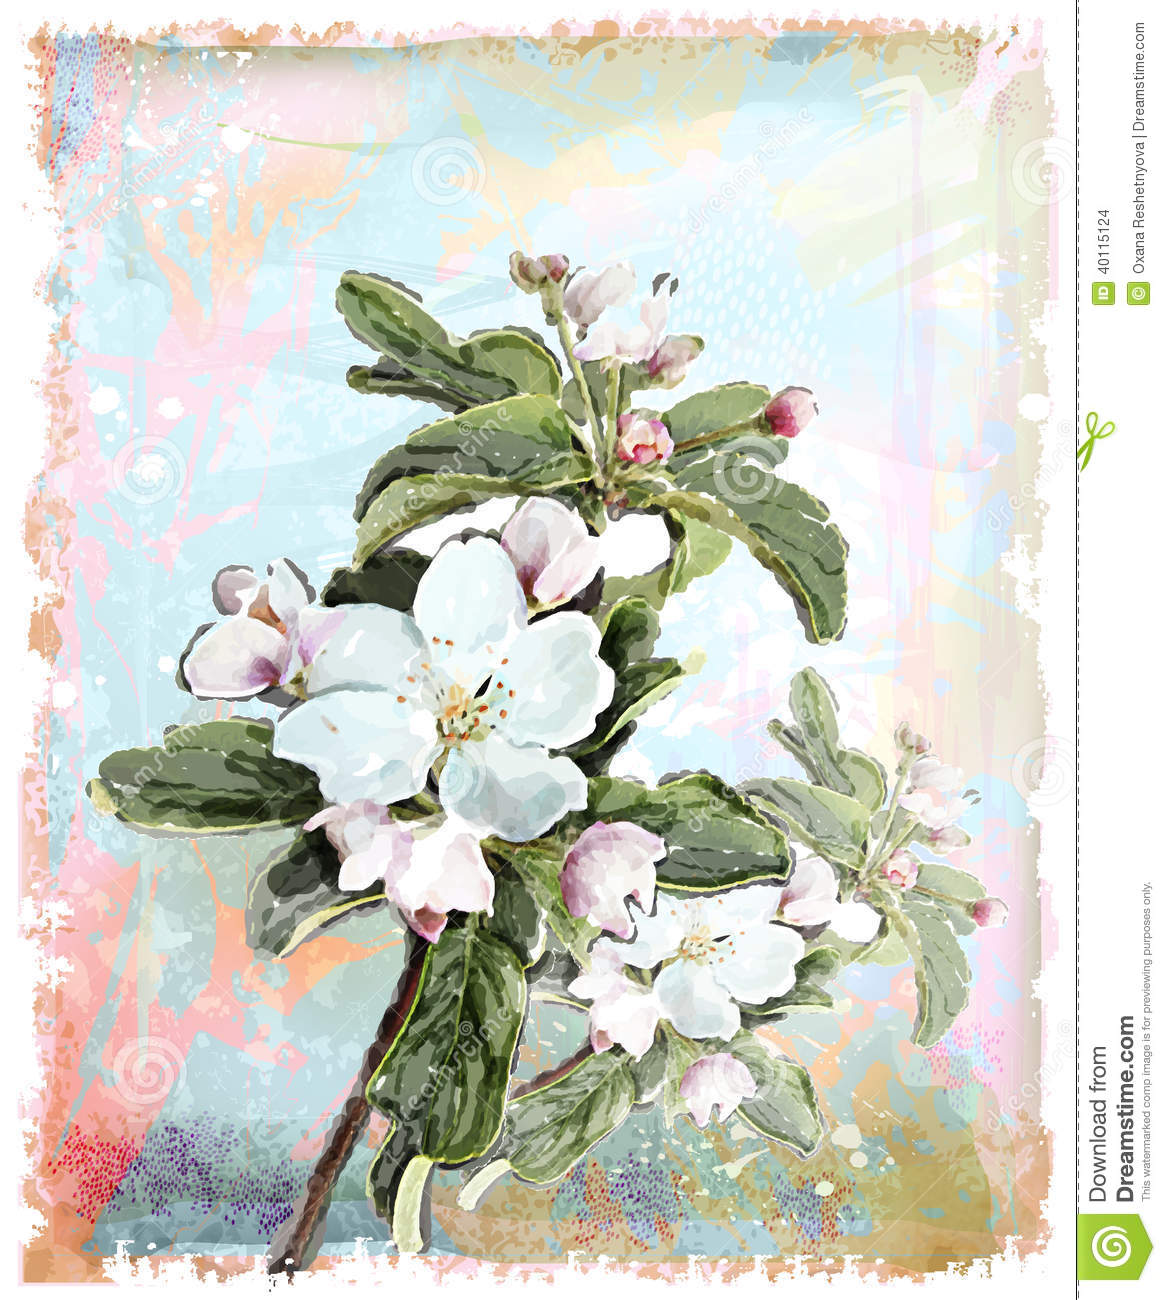 Apple floresce